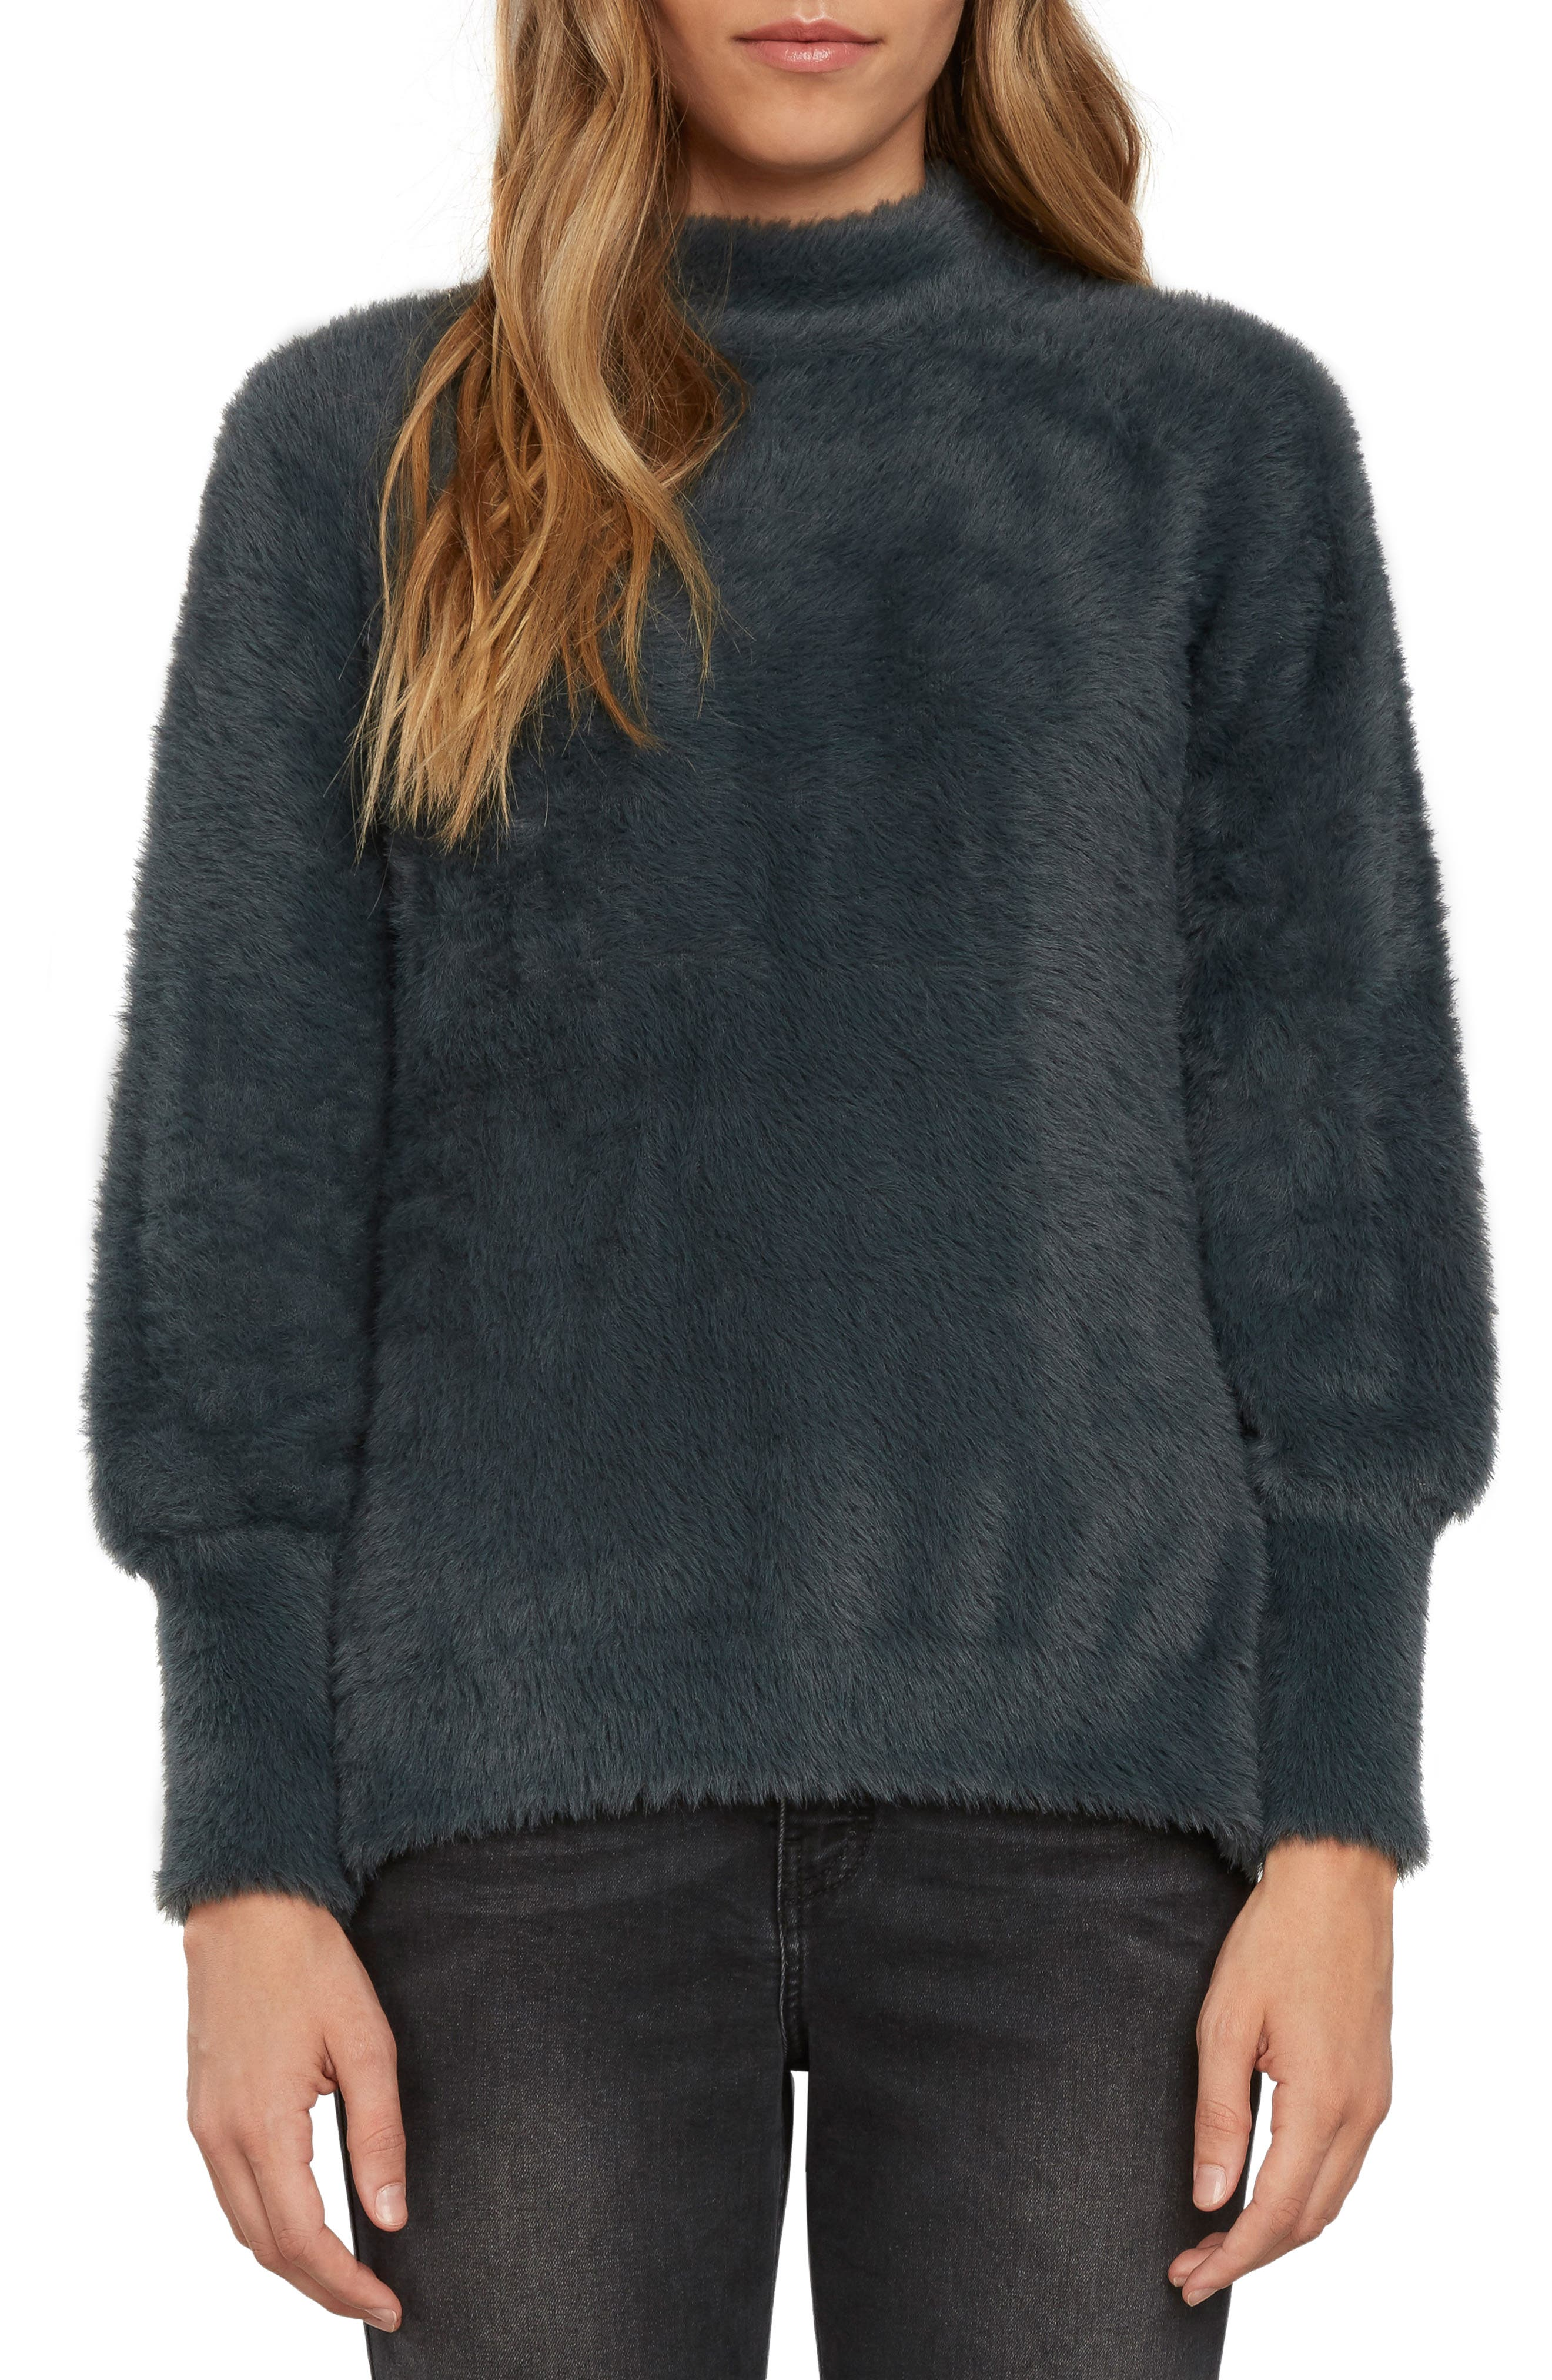 Fuzzy Mock Neck Sweater,                             Main thumbnail 1, color,                             025